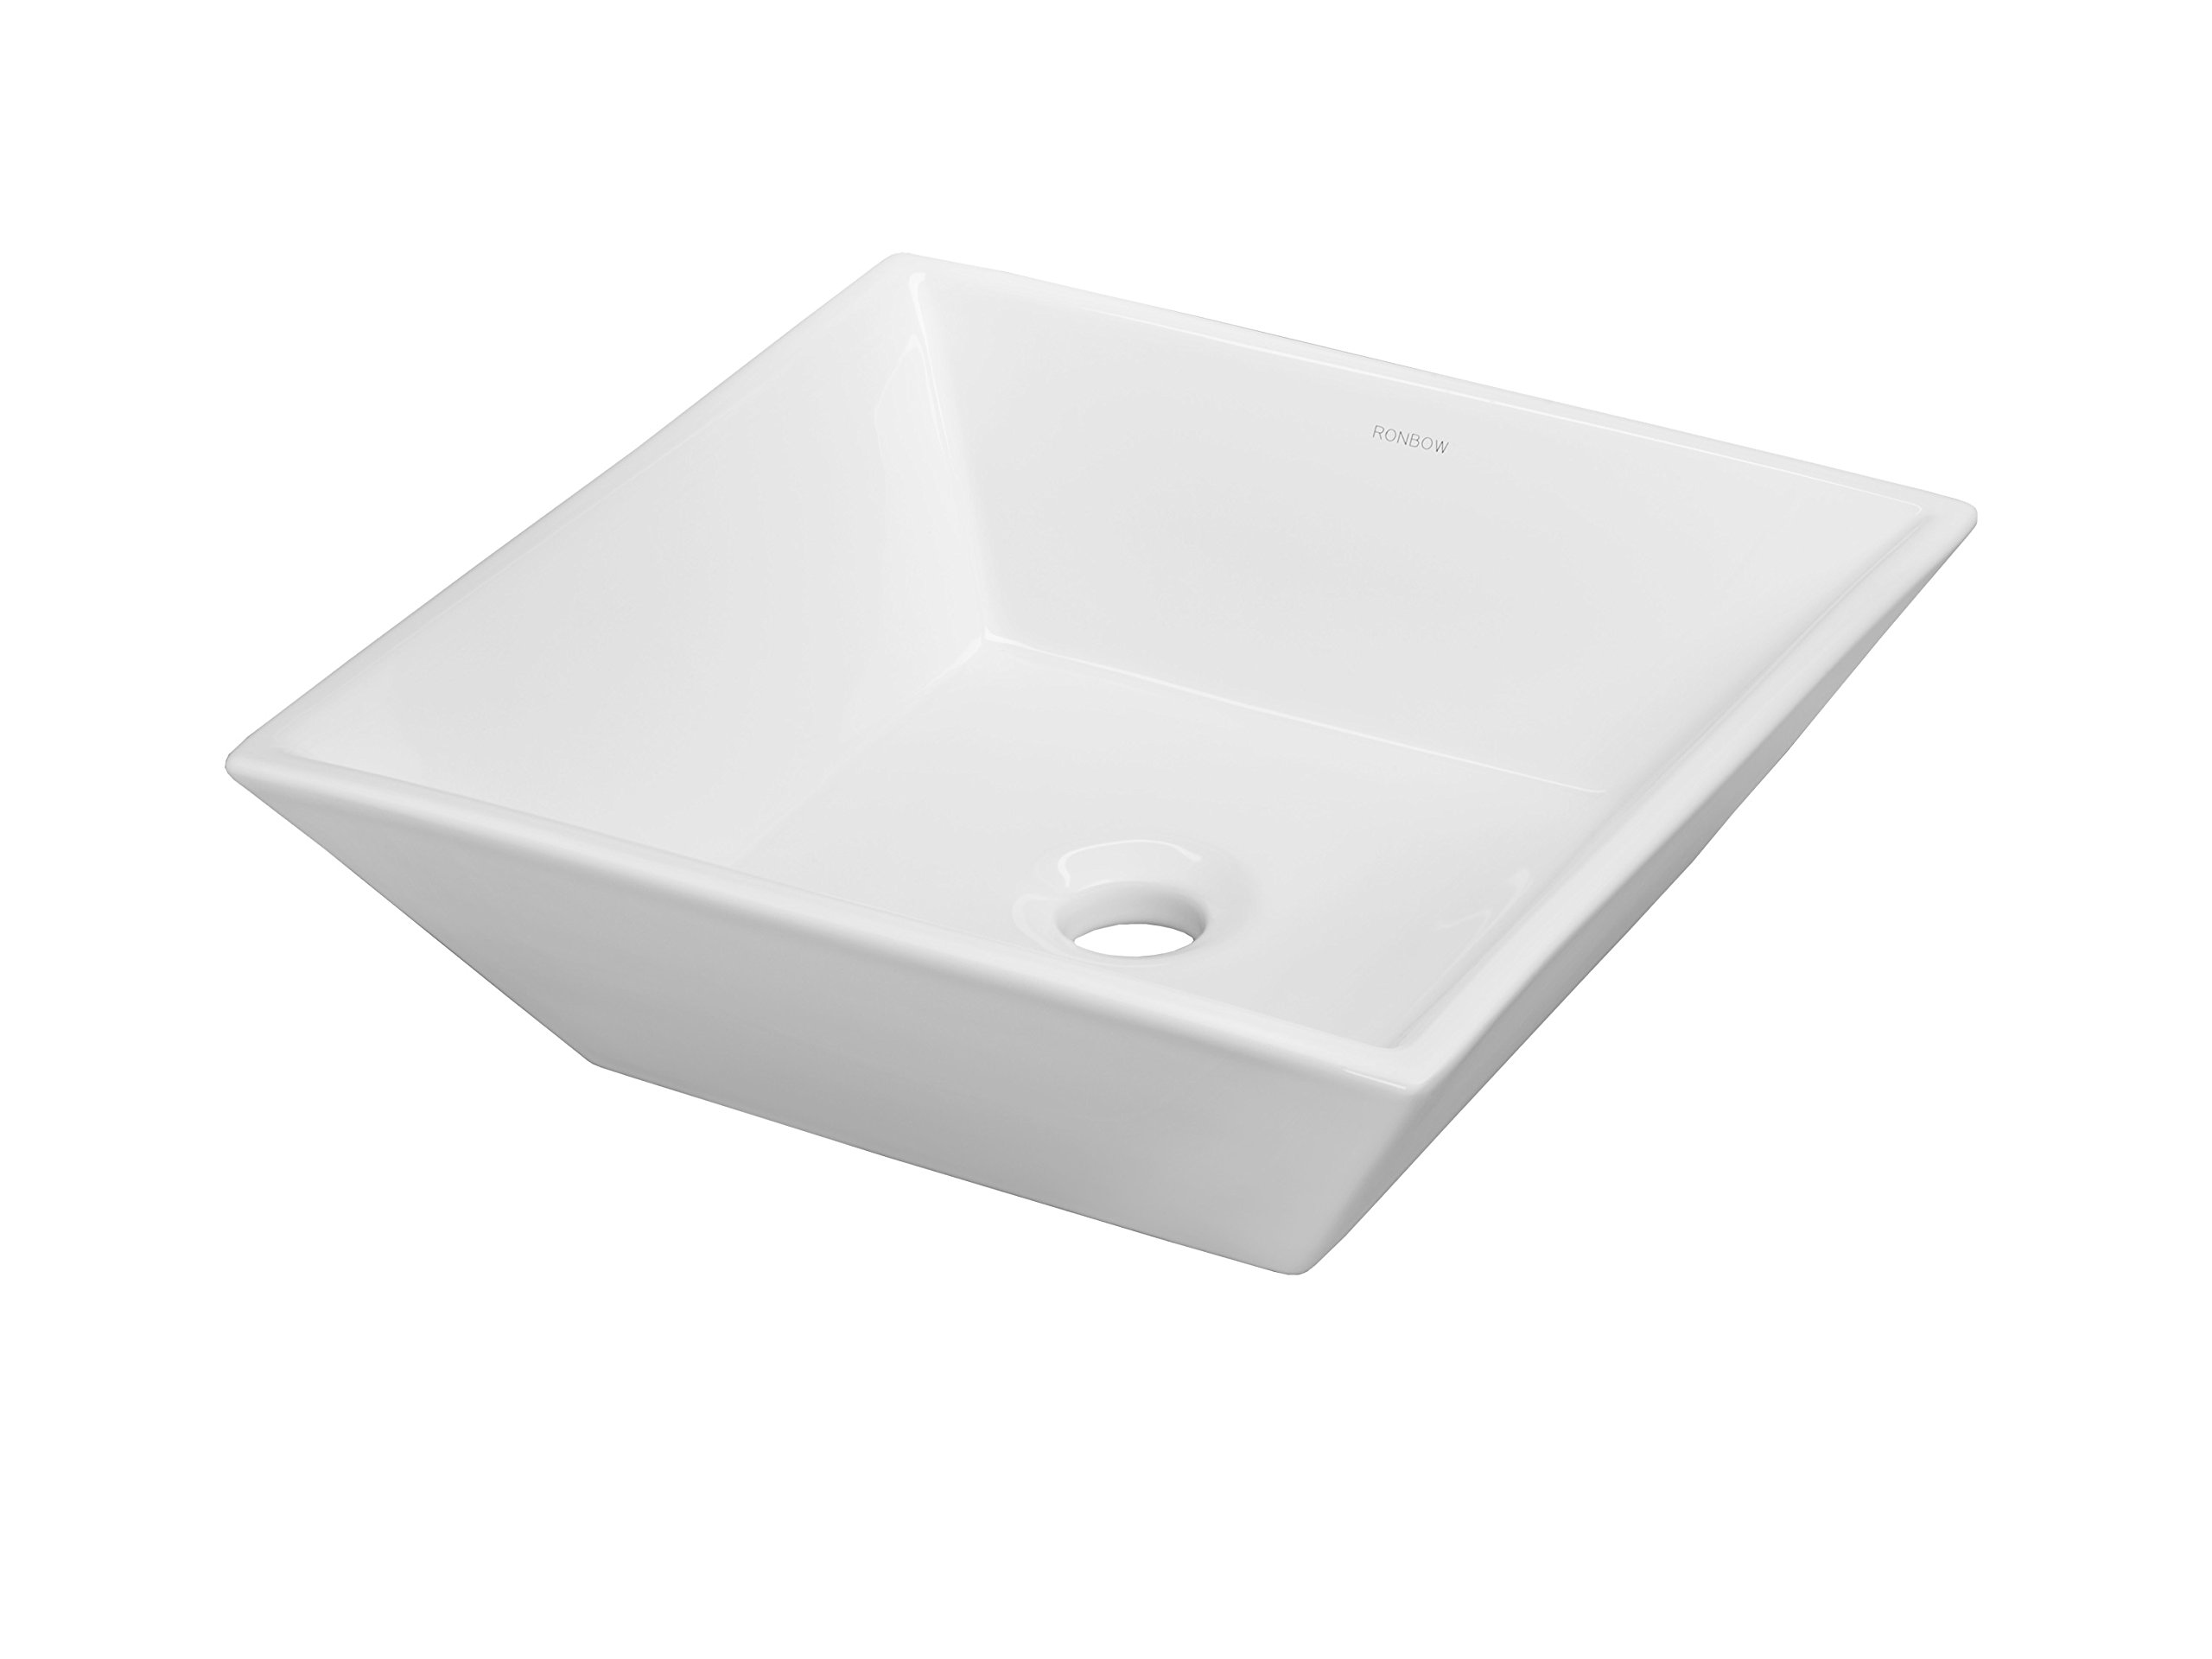 Ronbow 16 Inch Square Ceramic Vessel Bathroom Sink without Overflow 200005-WH